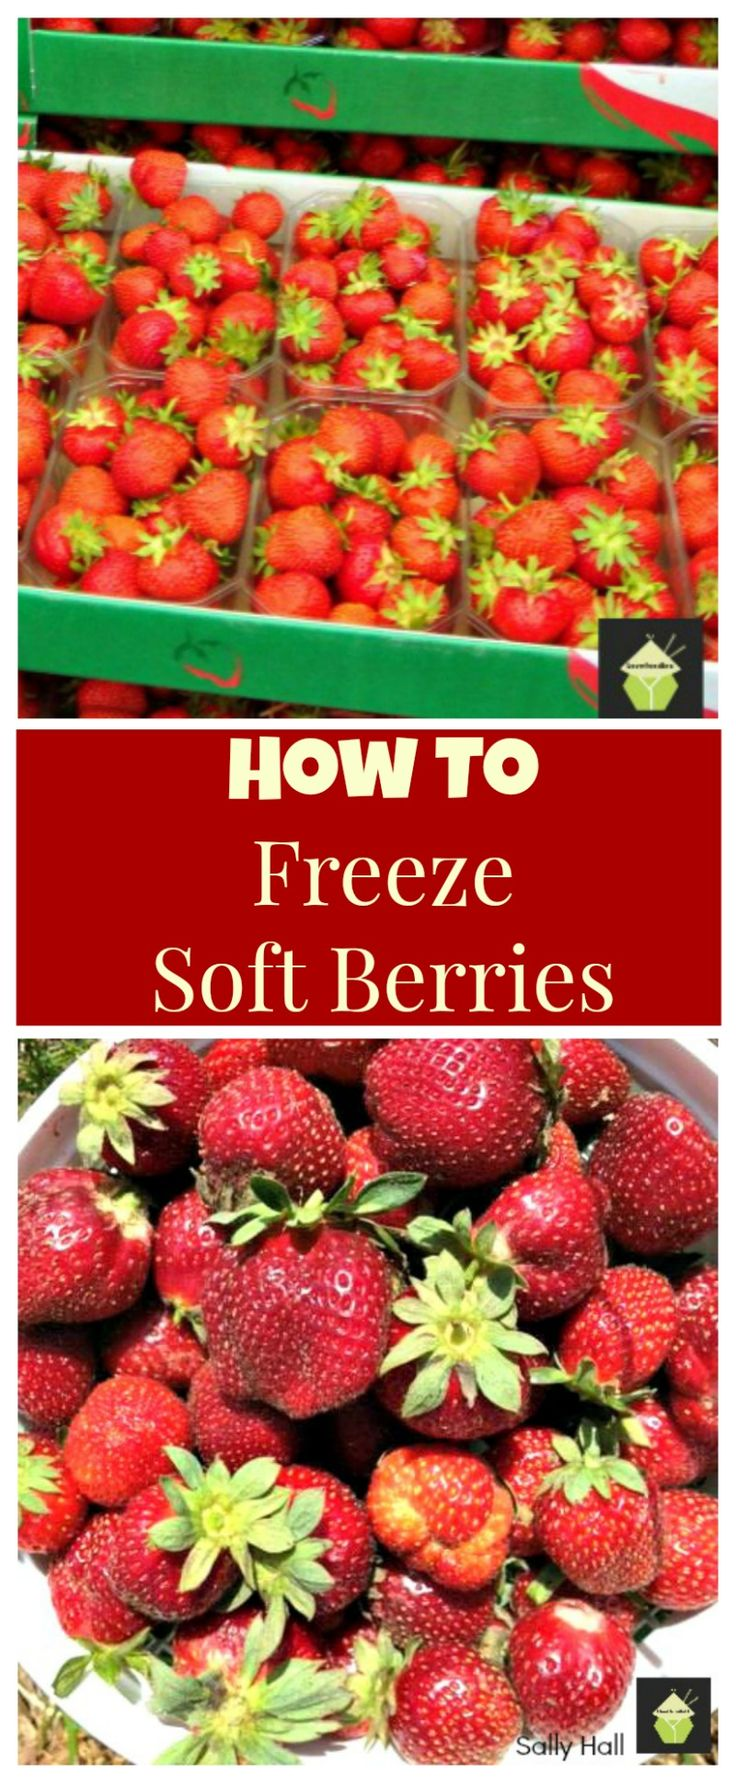 How To Freeze Soft Berries. A very simple and effective